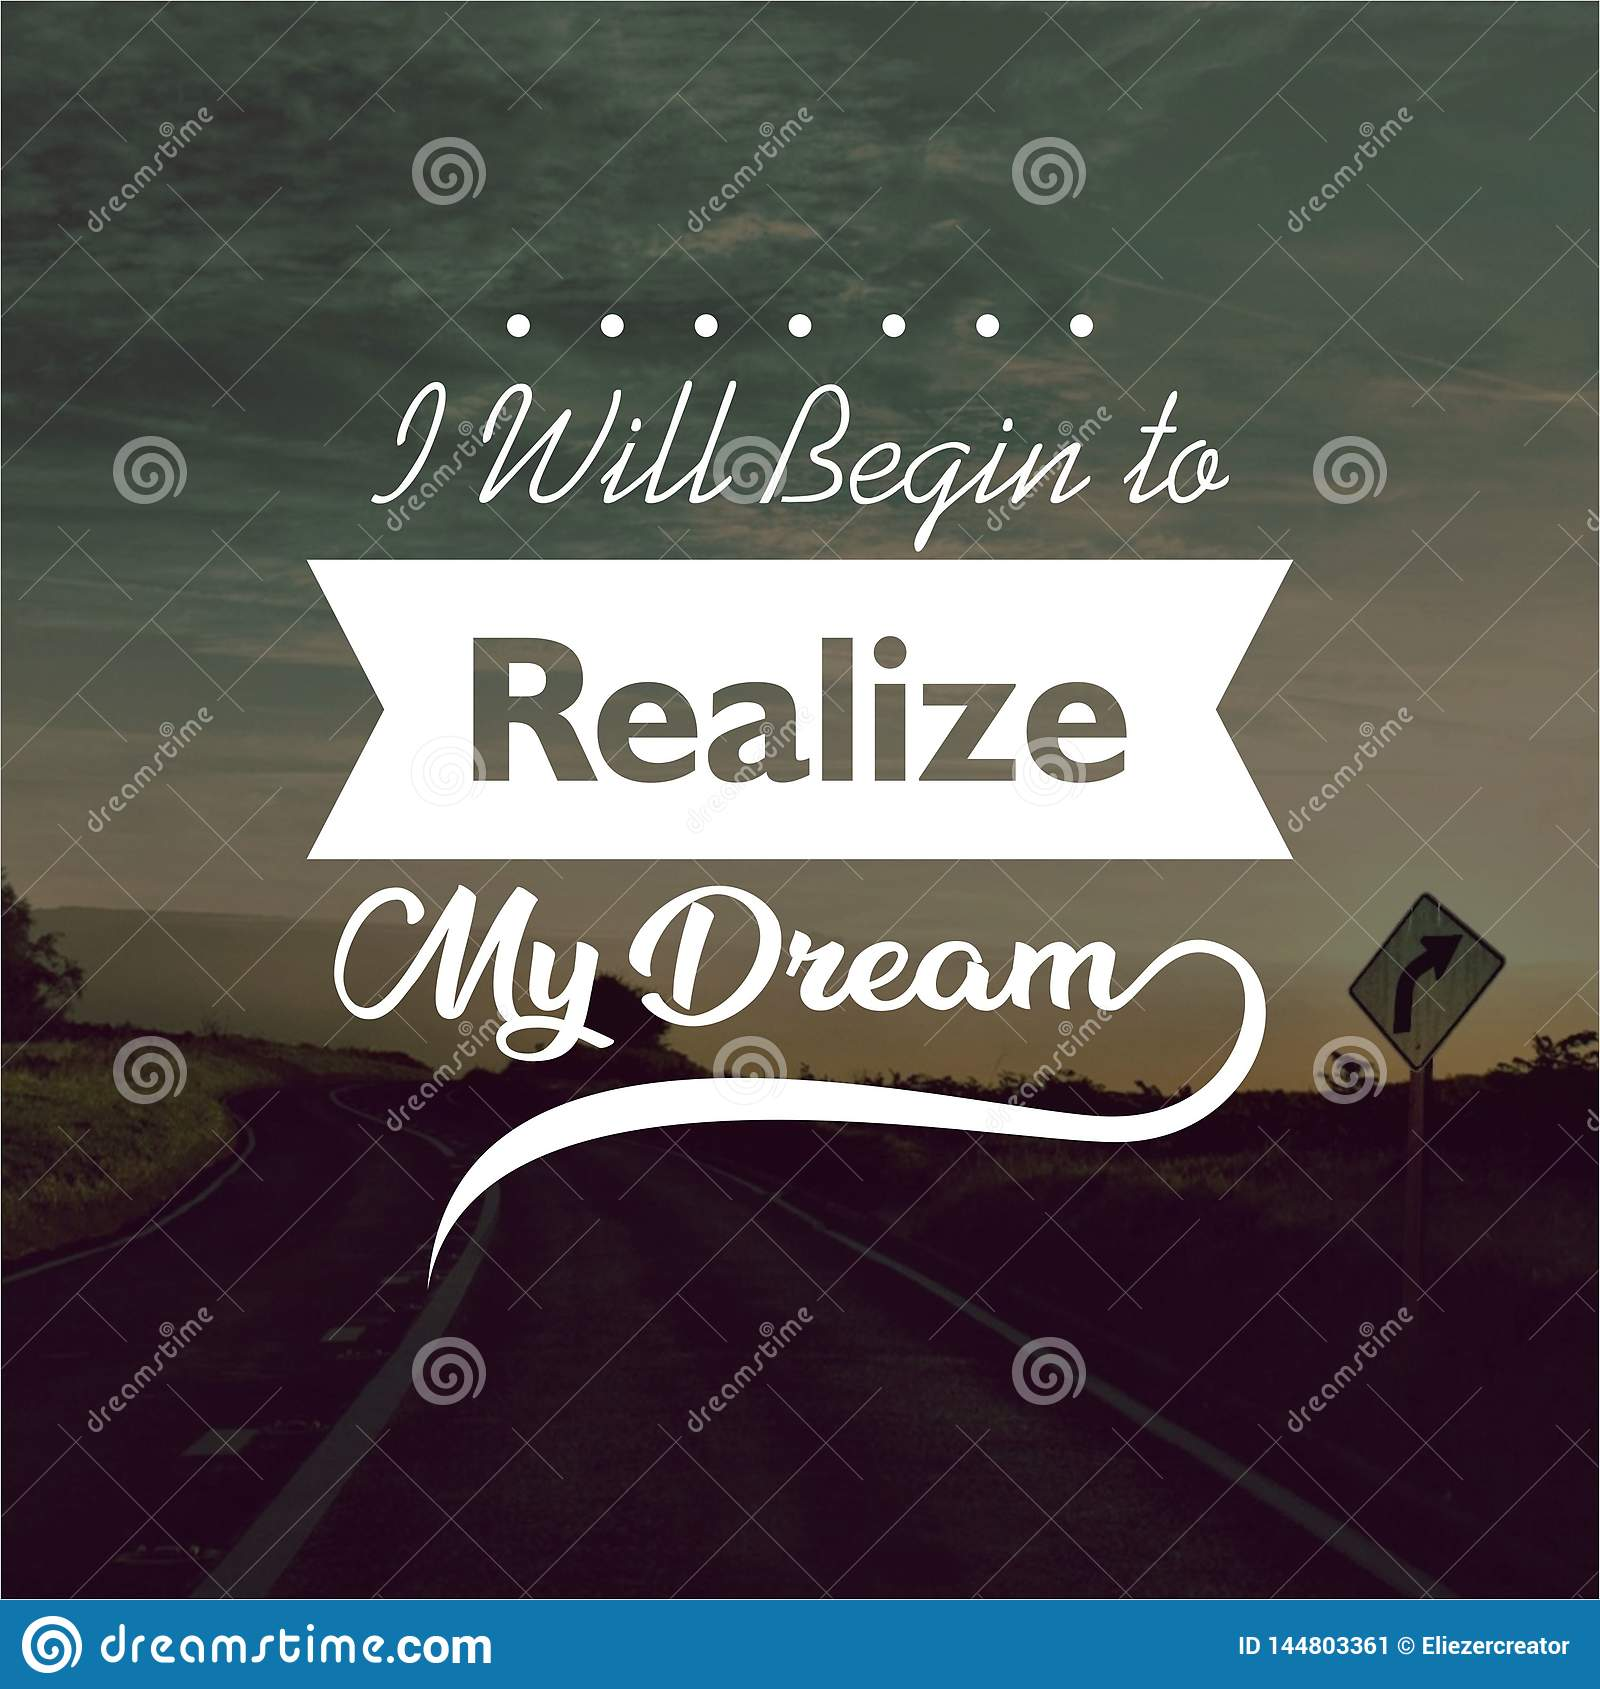 Quote. I will begin to realize my dream. Inspirational and motivational quotes and sayings about life,